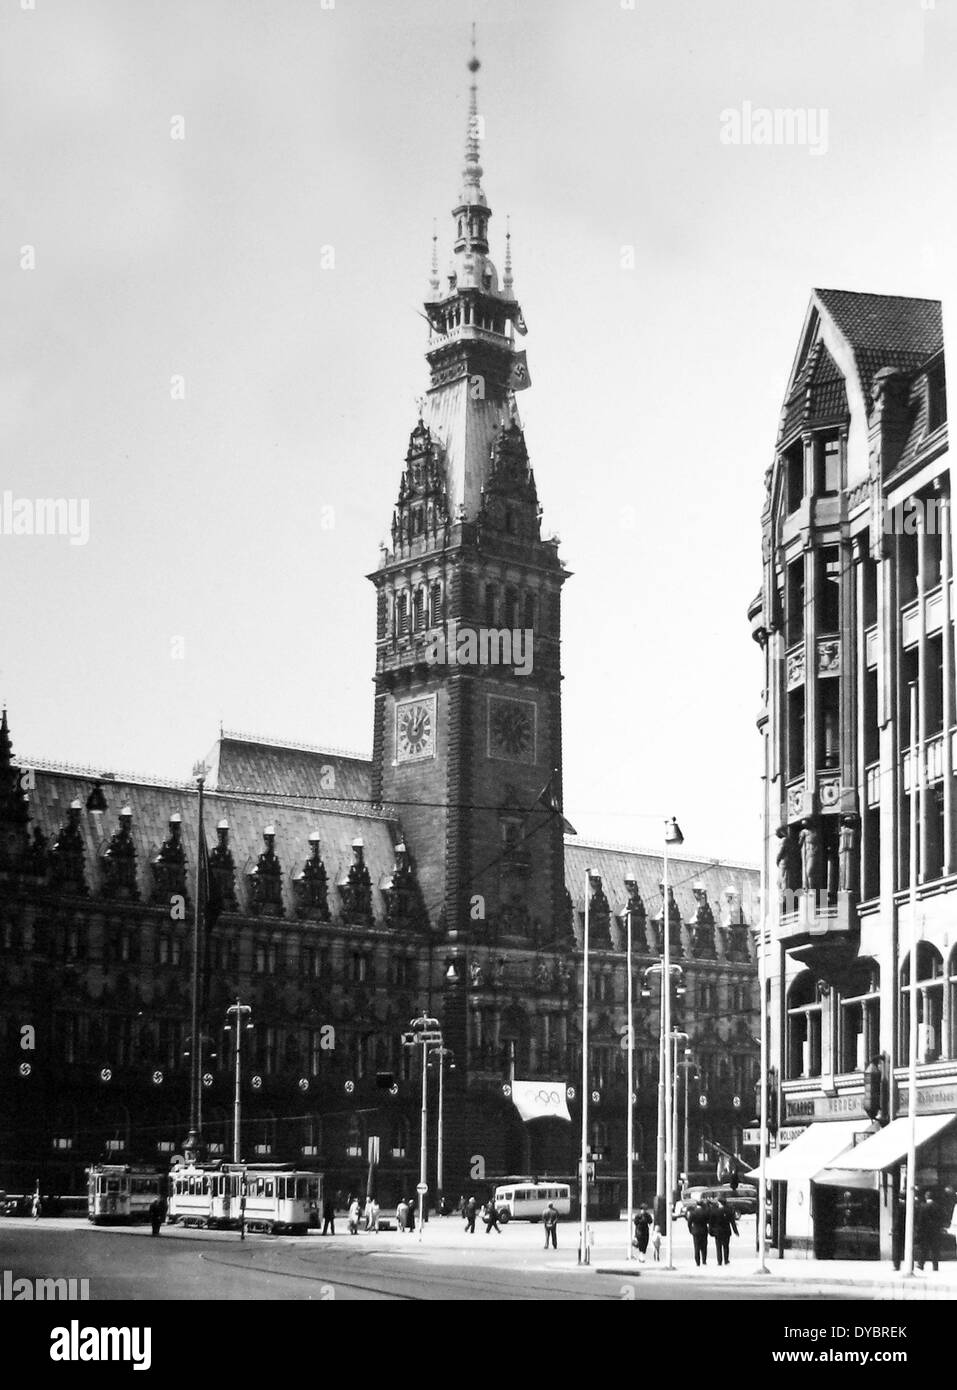 Hamburg Germany in the 1930s - Stock Image